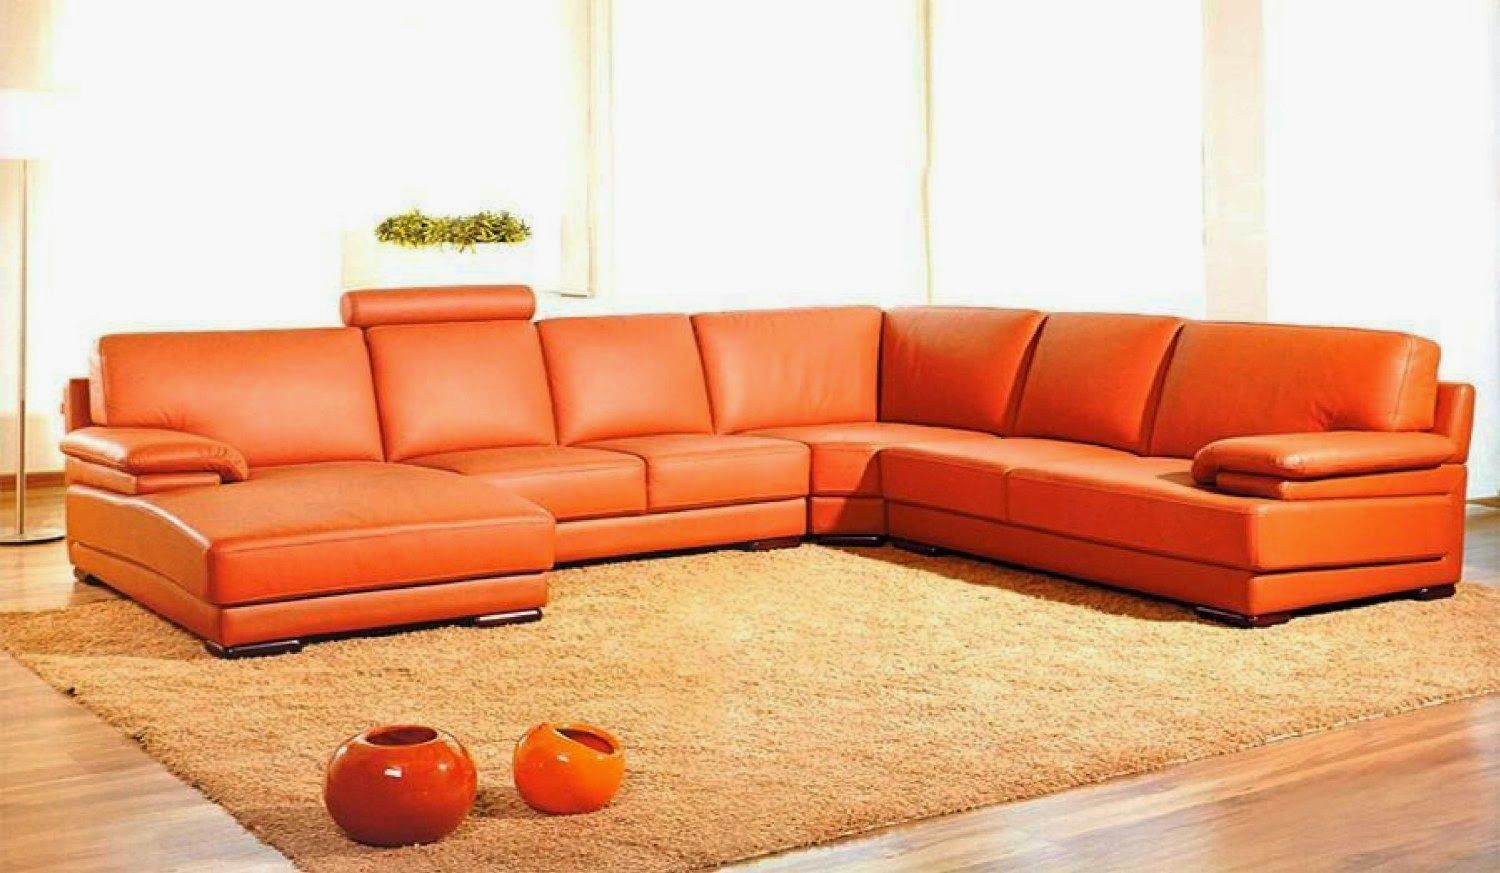 Perfect Good Looking Orange Leather Sofas You Must Have : Charming UShaped Orange Leather  Sofa With